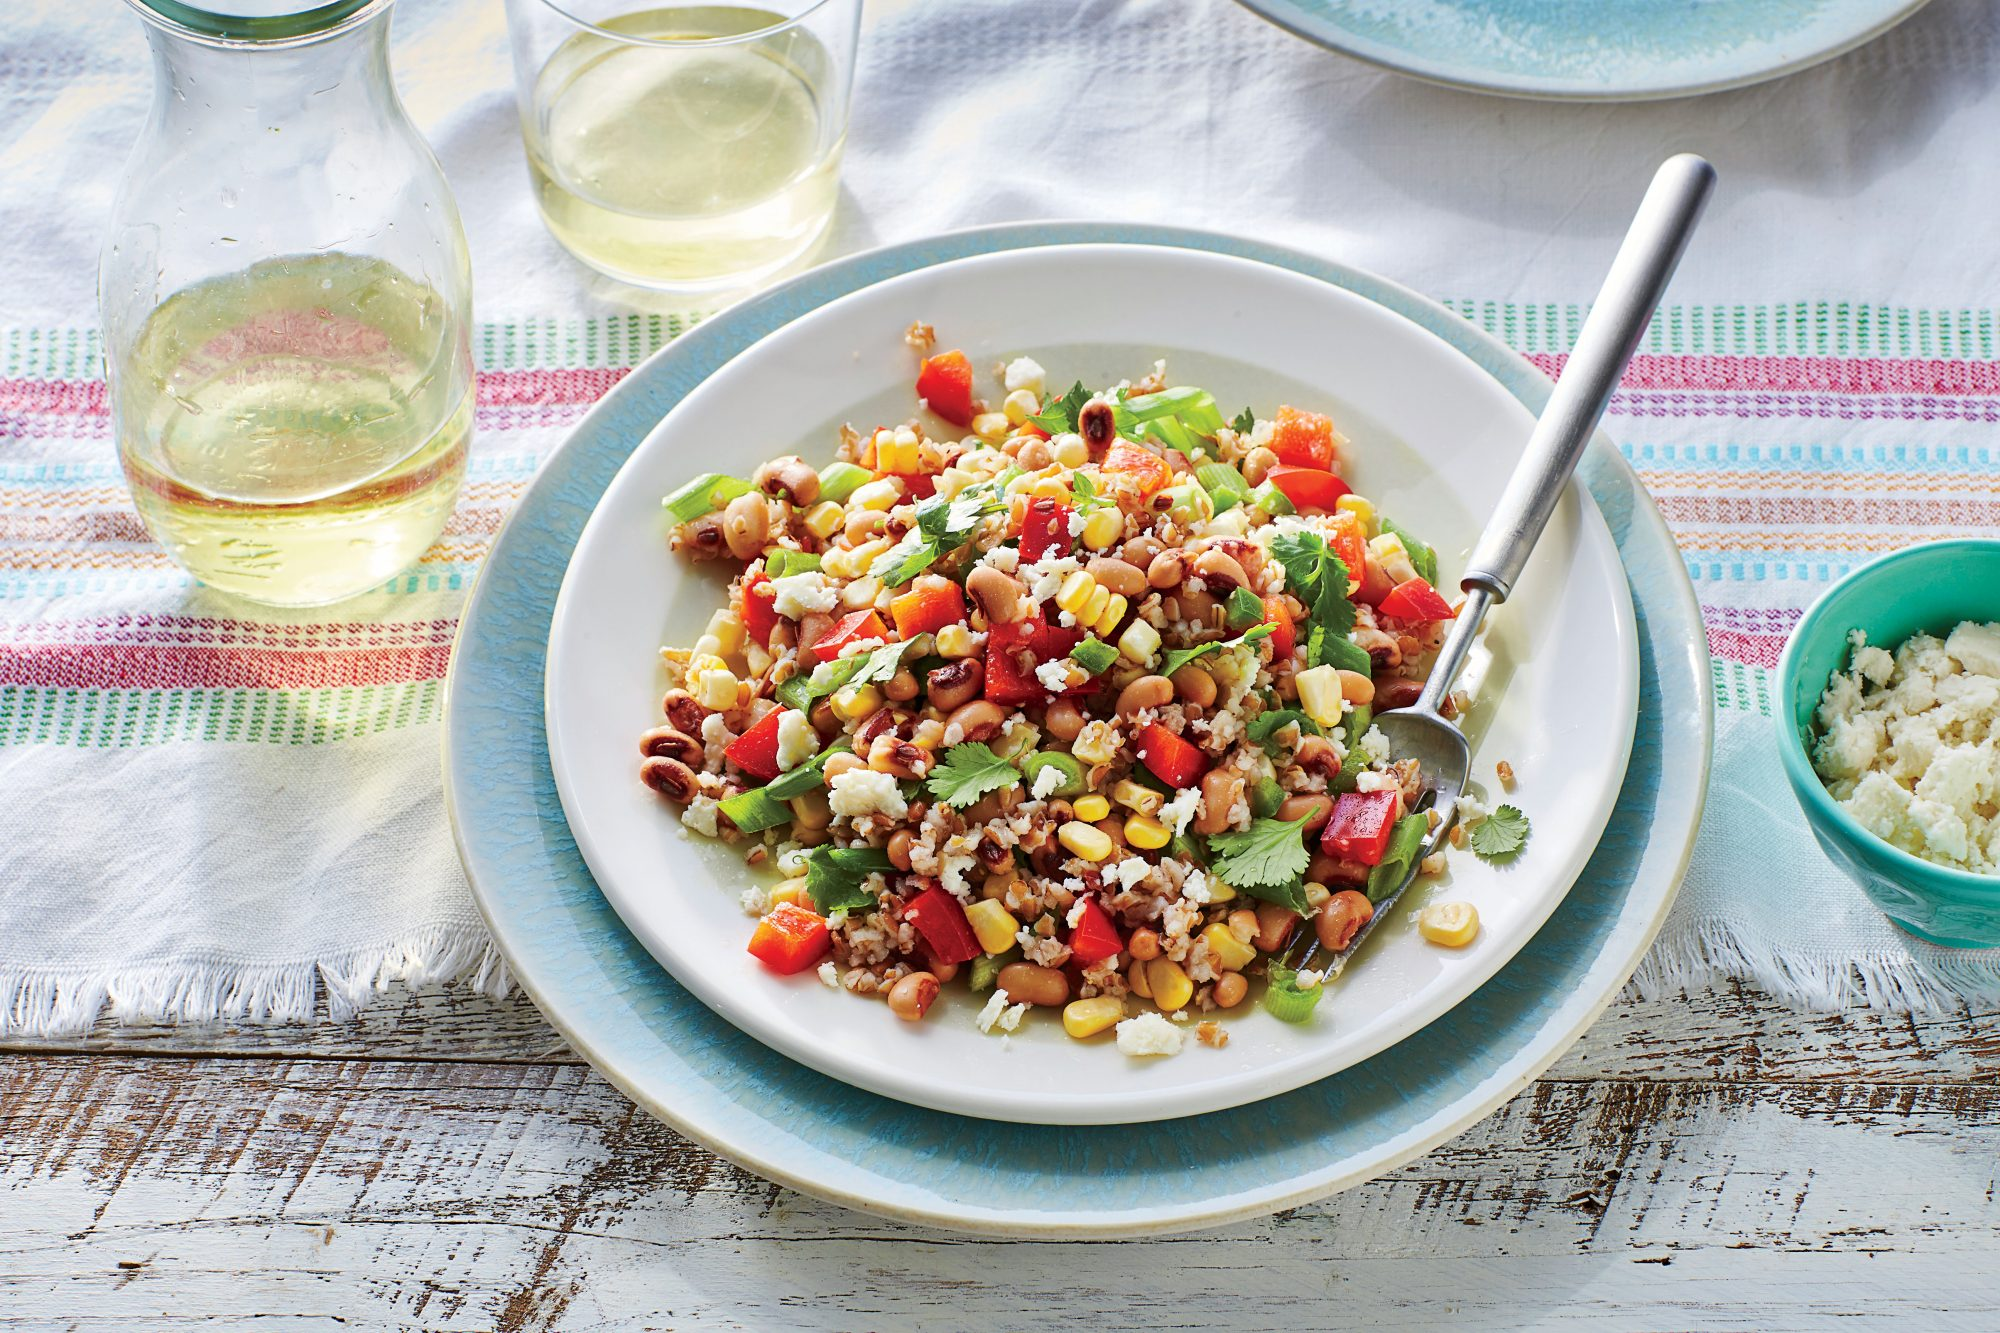 Black-Eyed Pea and Grain Salad